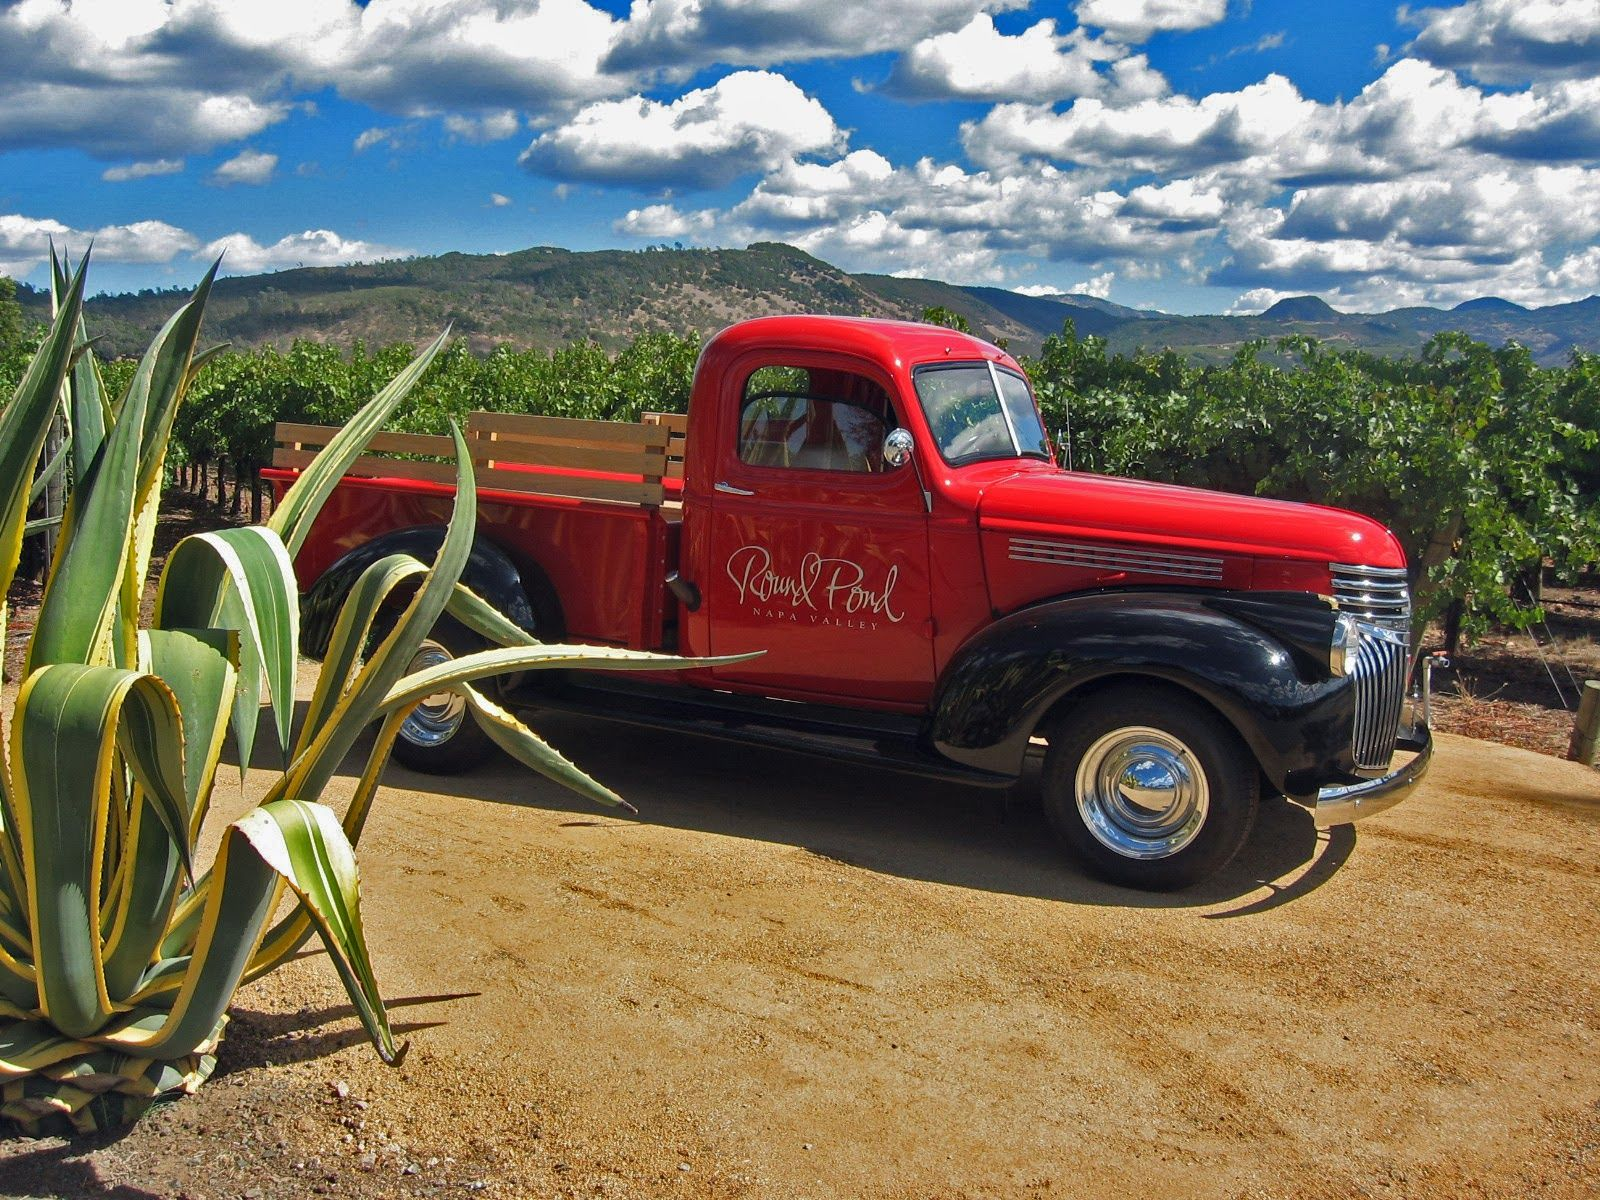 Old Farm Trucks Winery Google Search Farm Trucks Old Farm Chevrolet Trucks